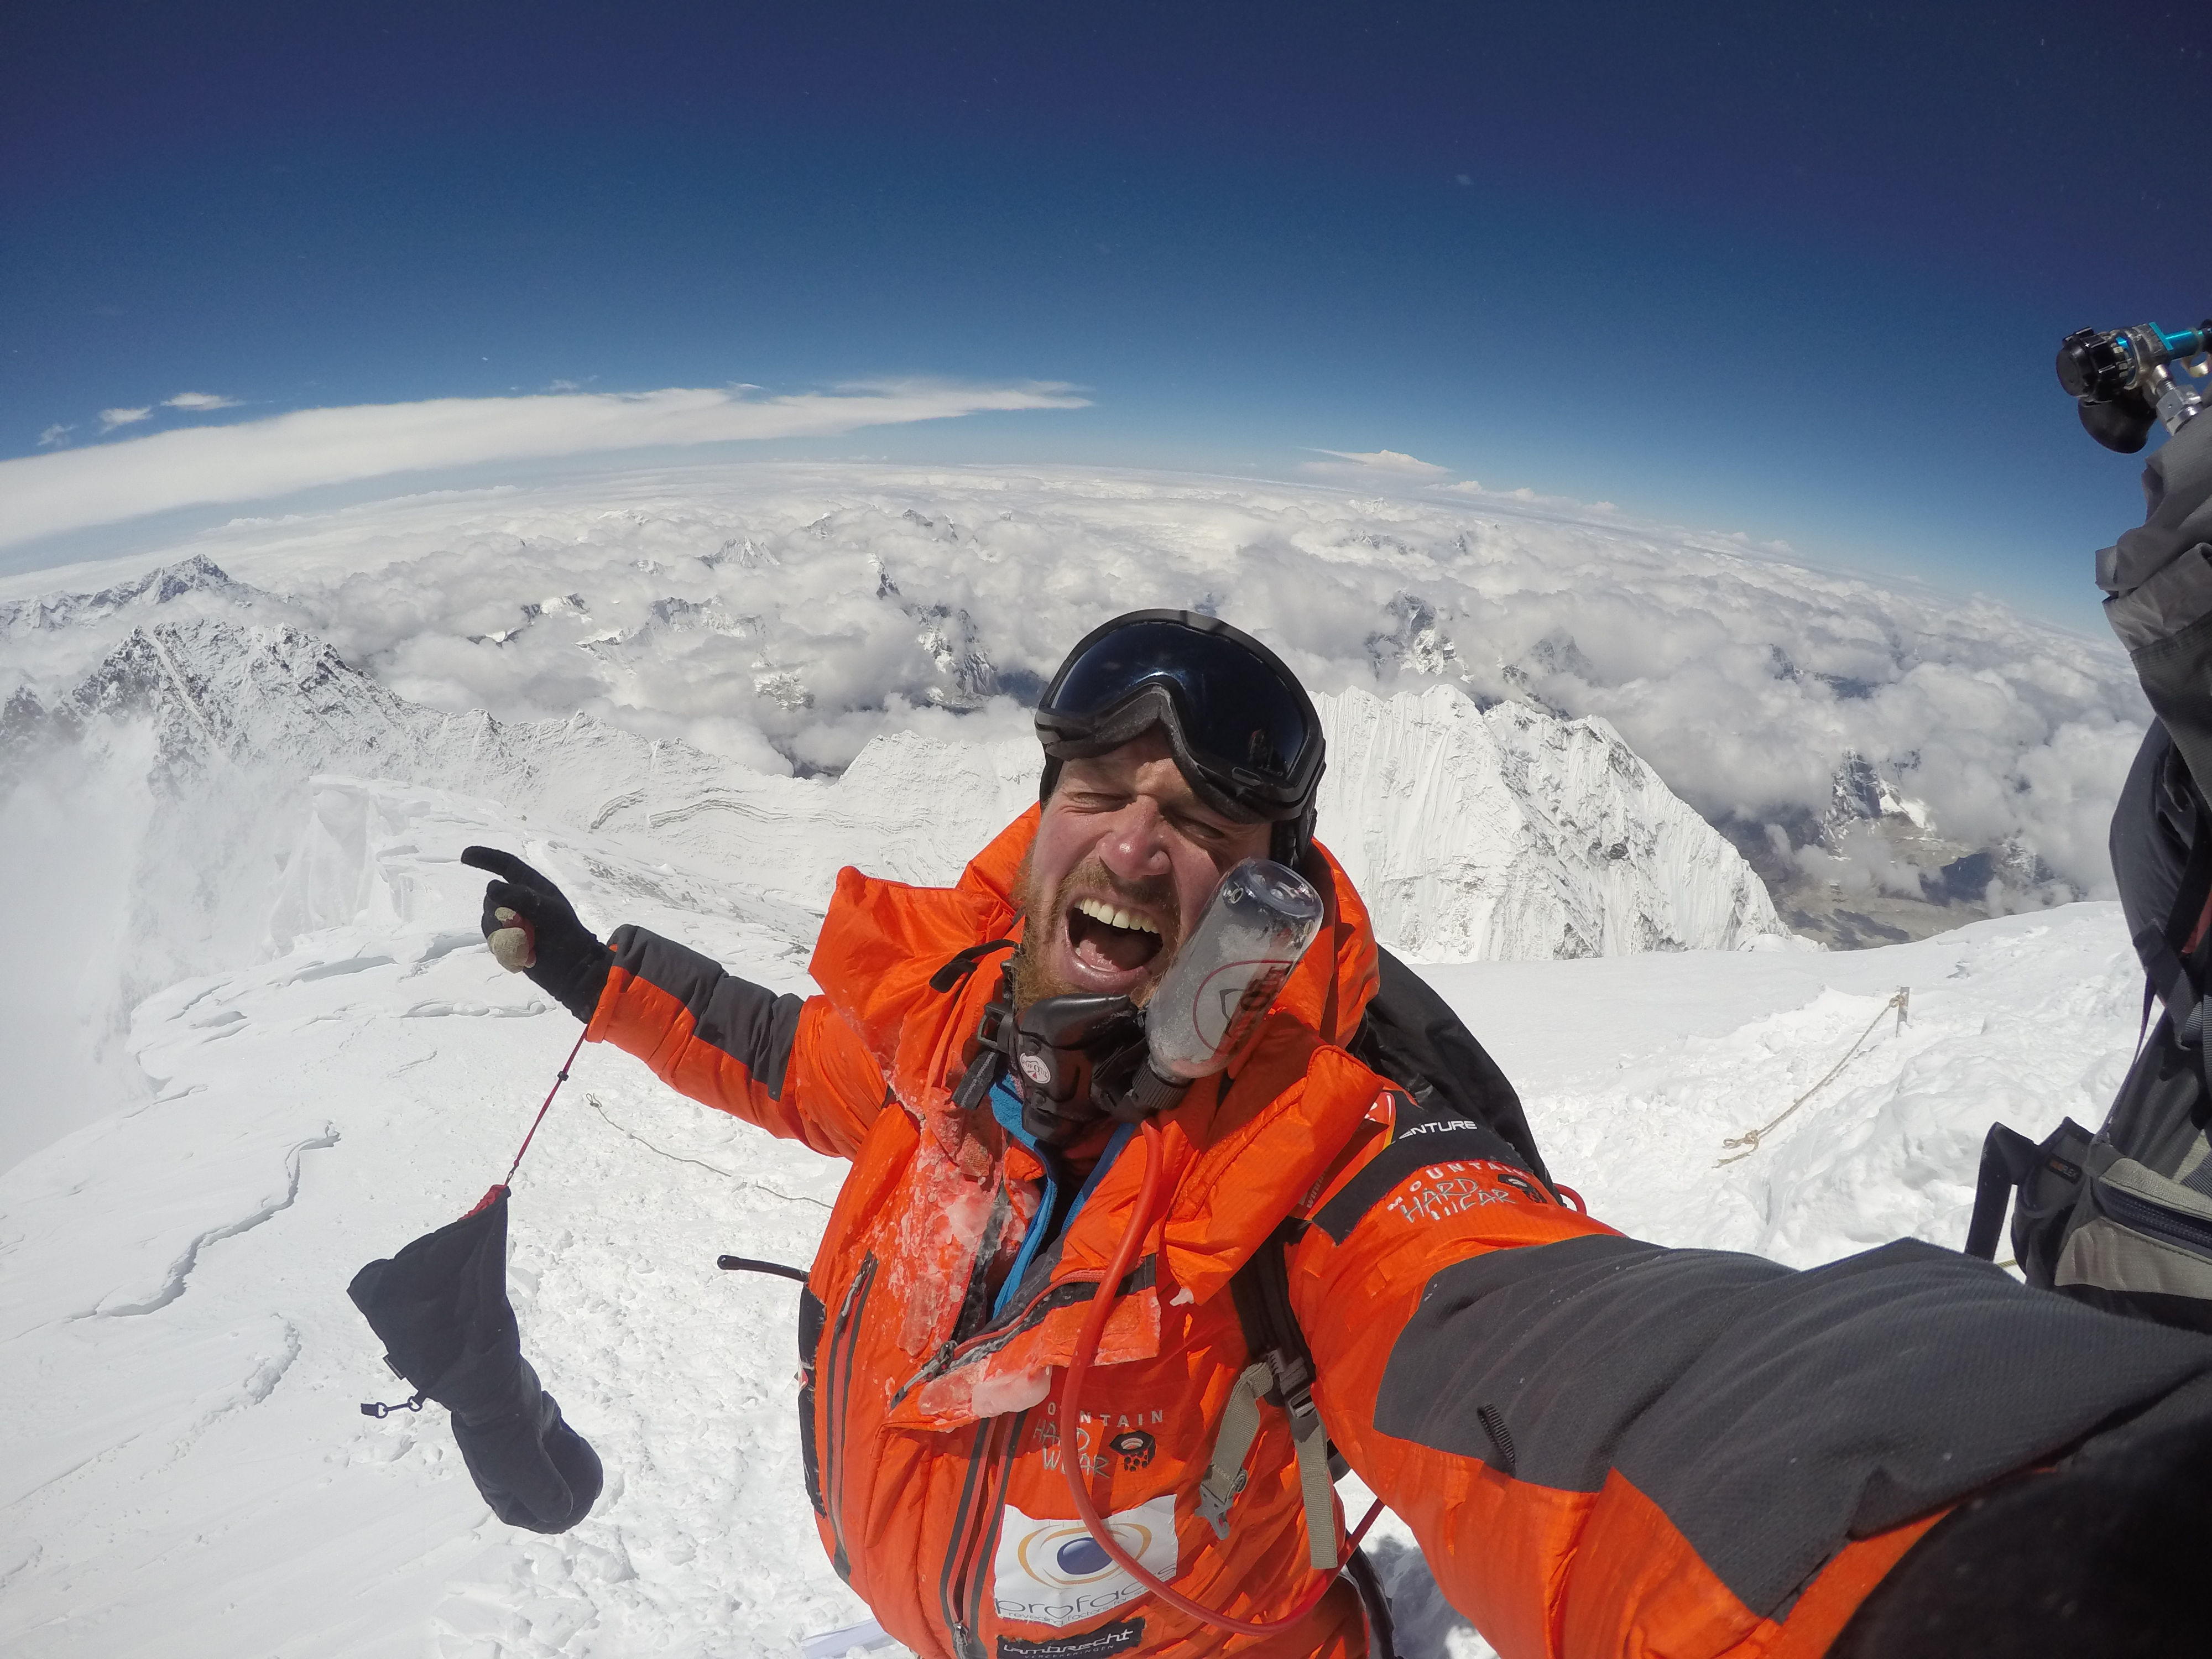 Doors Everest 7 Summits Of Happiness Frank Hetkan Be